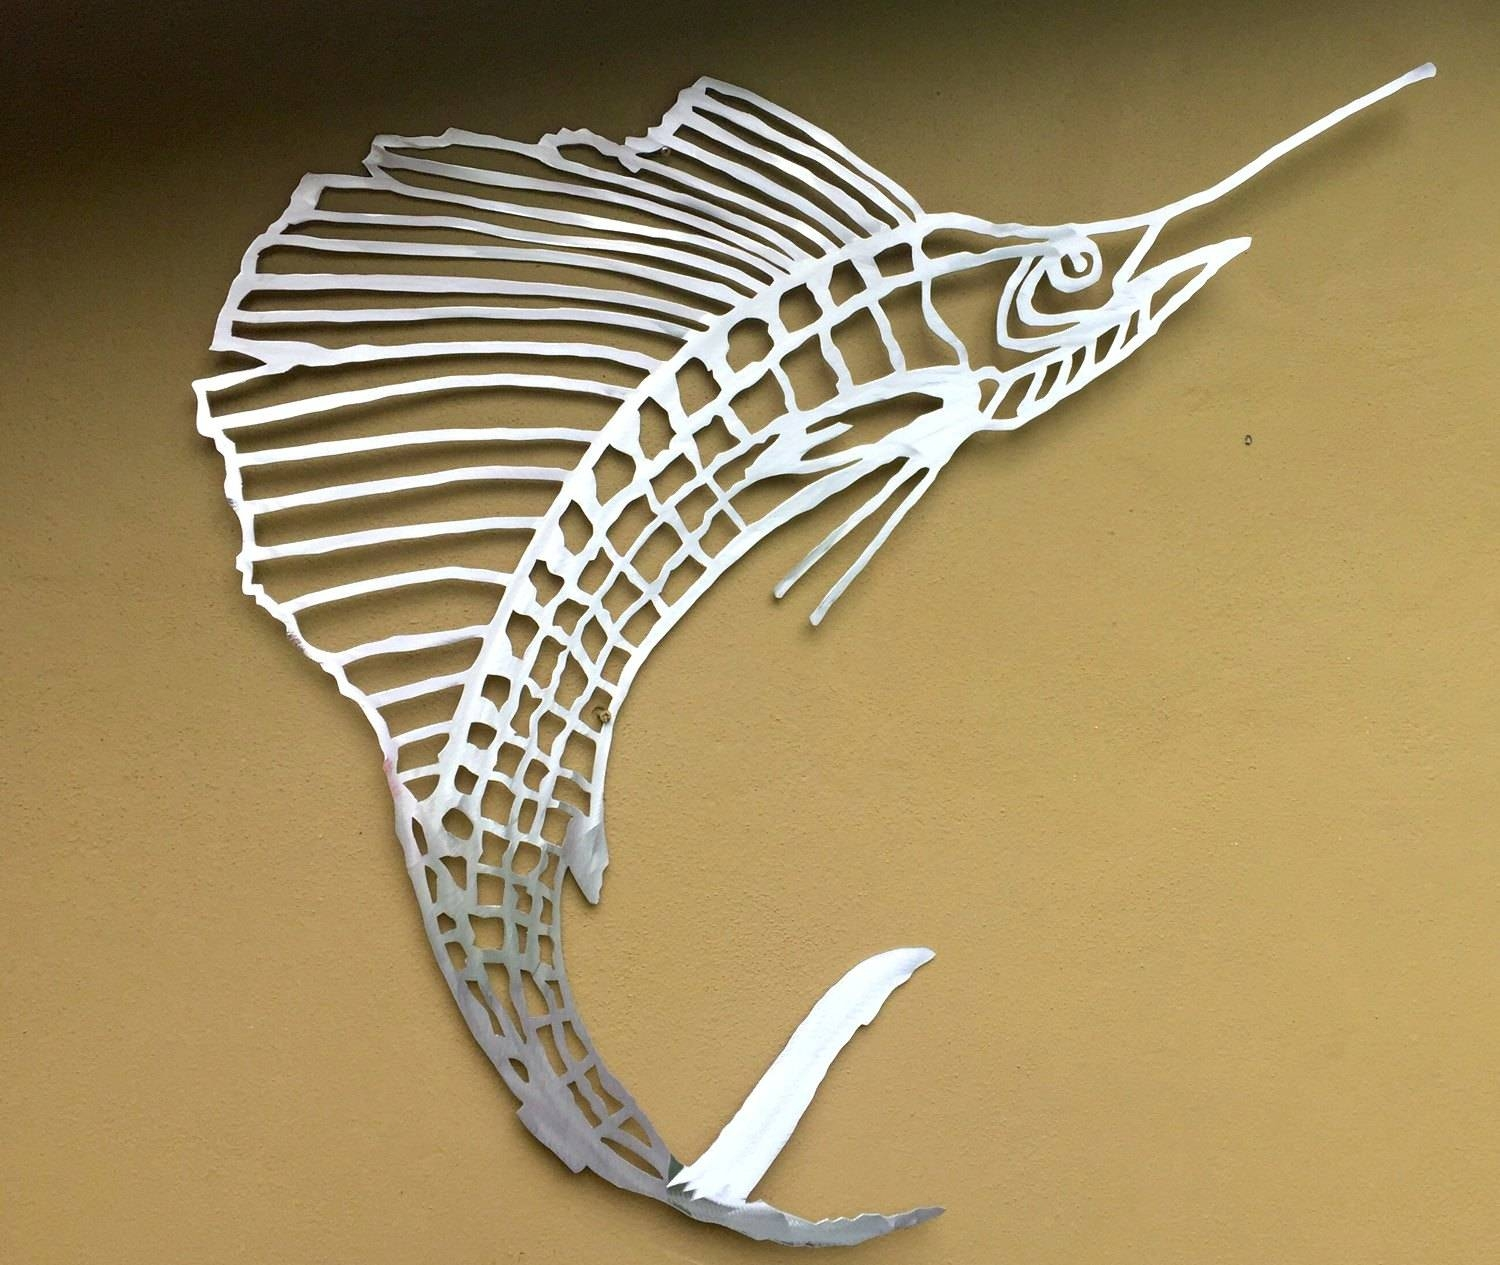 Wall Arts ~ Metal Fish Wall Art Sculptures Nz Stripped Bass Metal Pertaining To Most Current New Zealand Metal Wall Art (View 18 of 20)